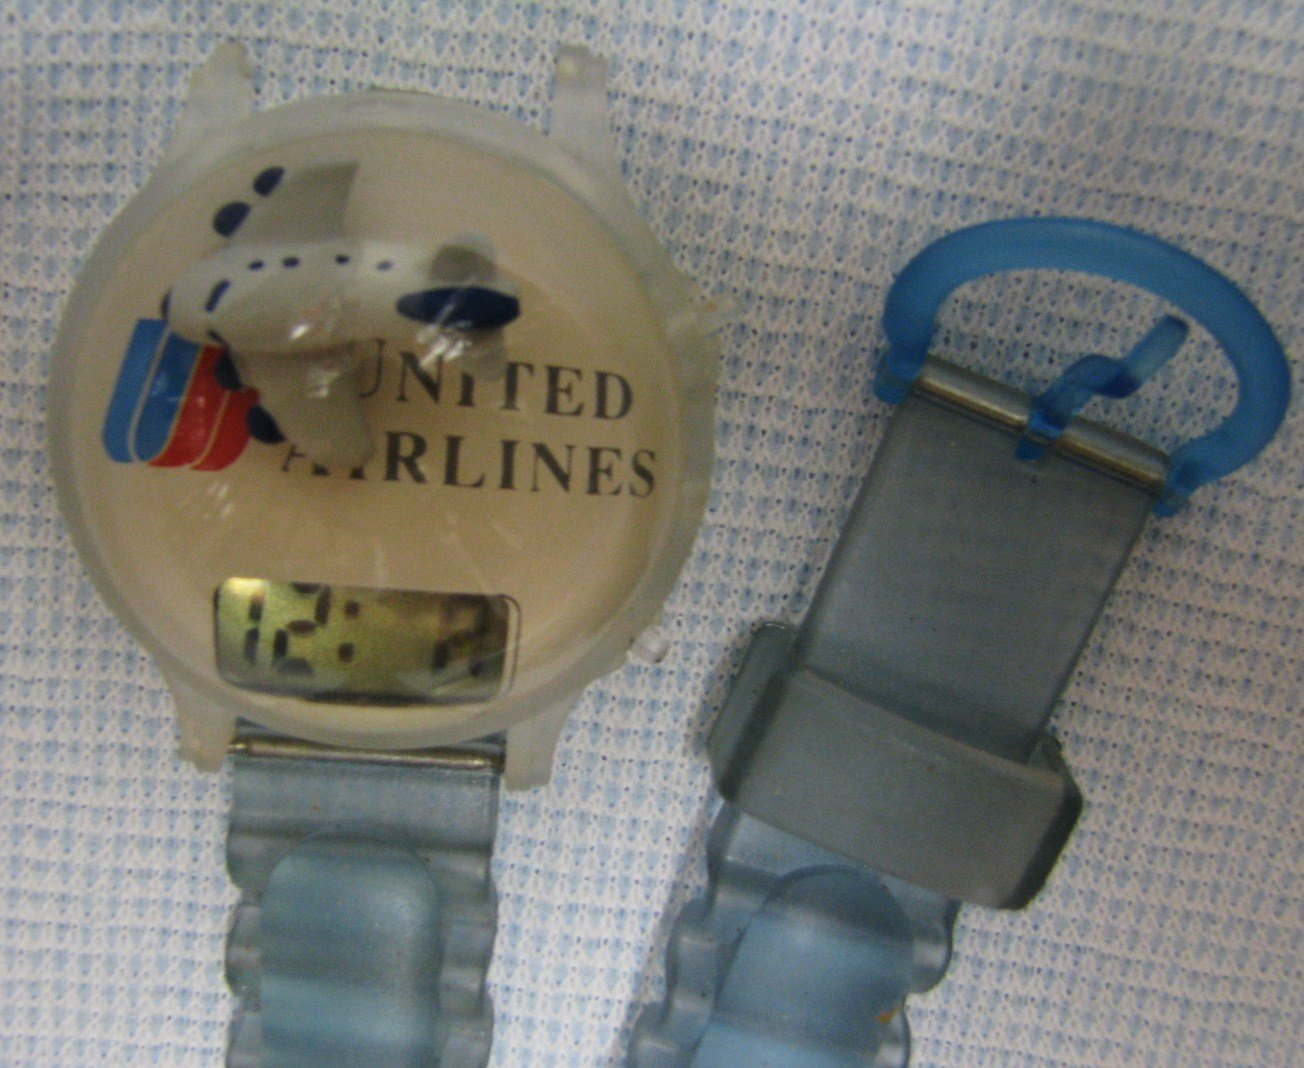 UNITED AIRLINES Digital Watch Promo Toys